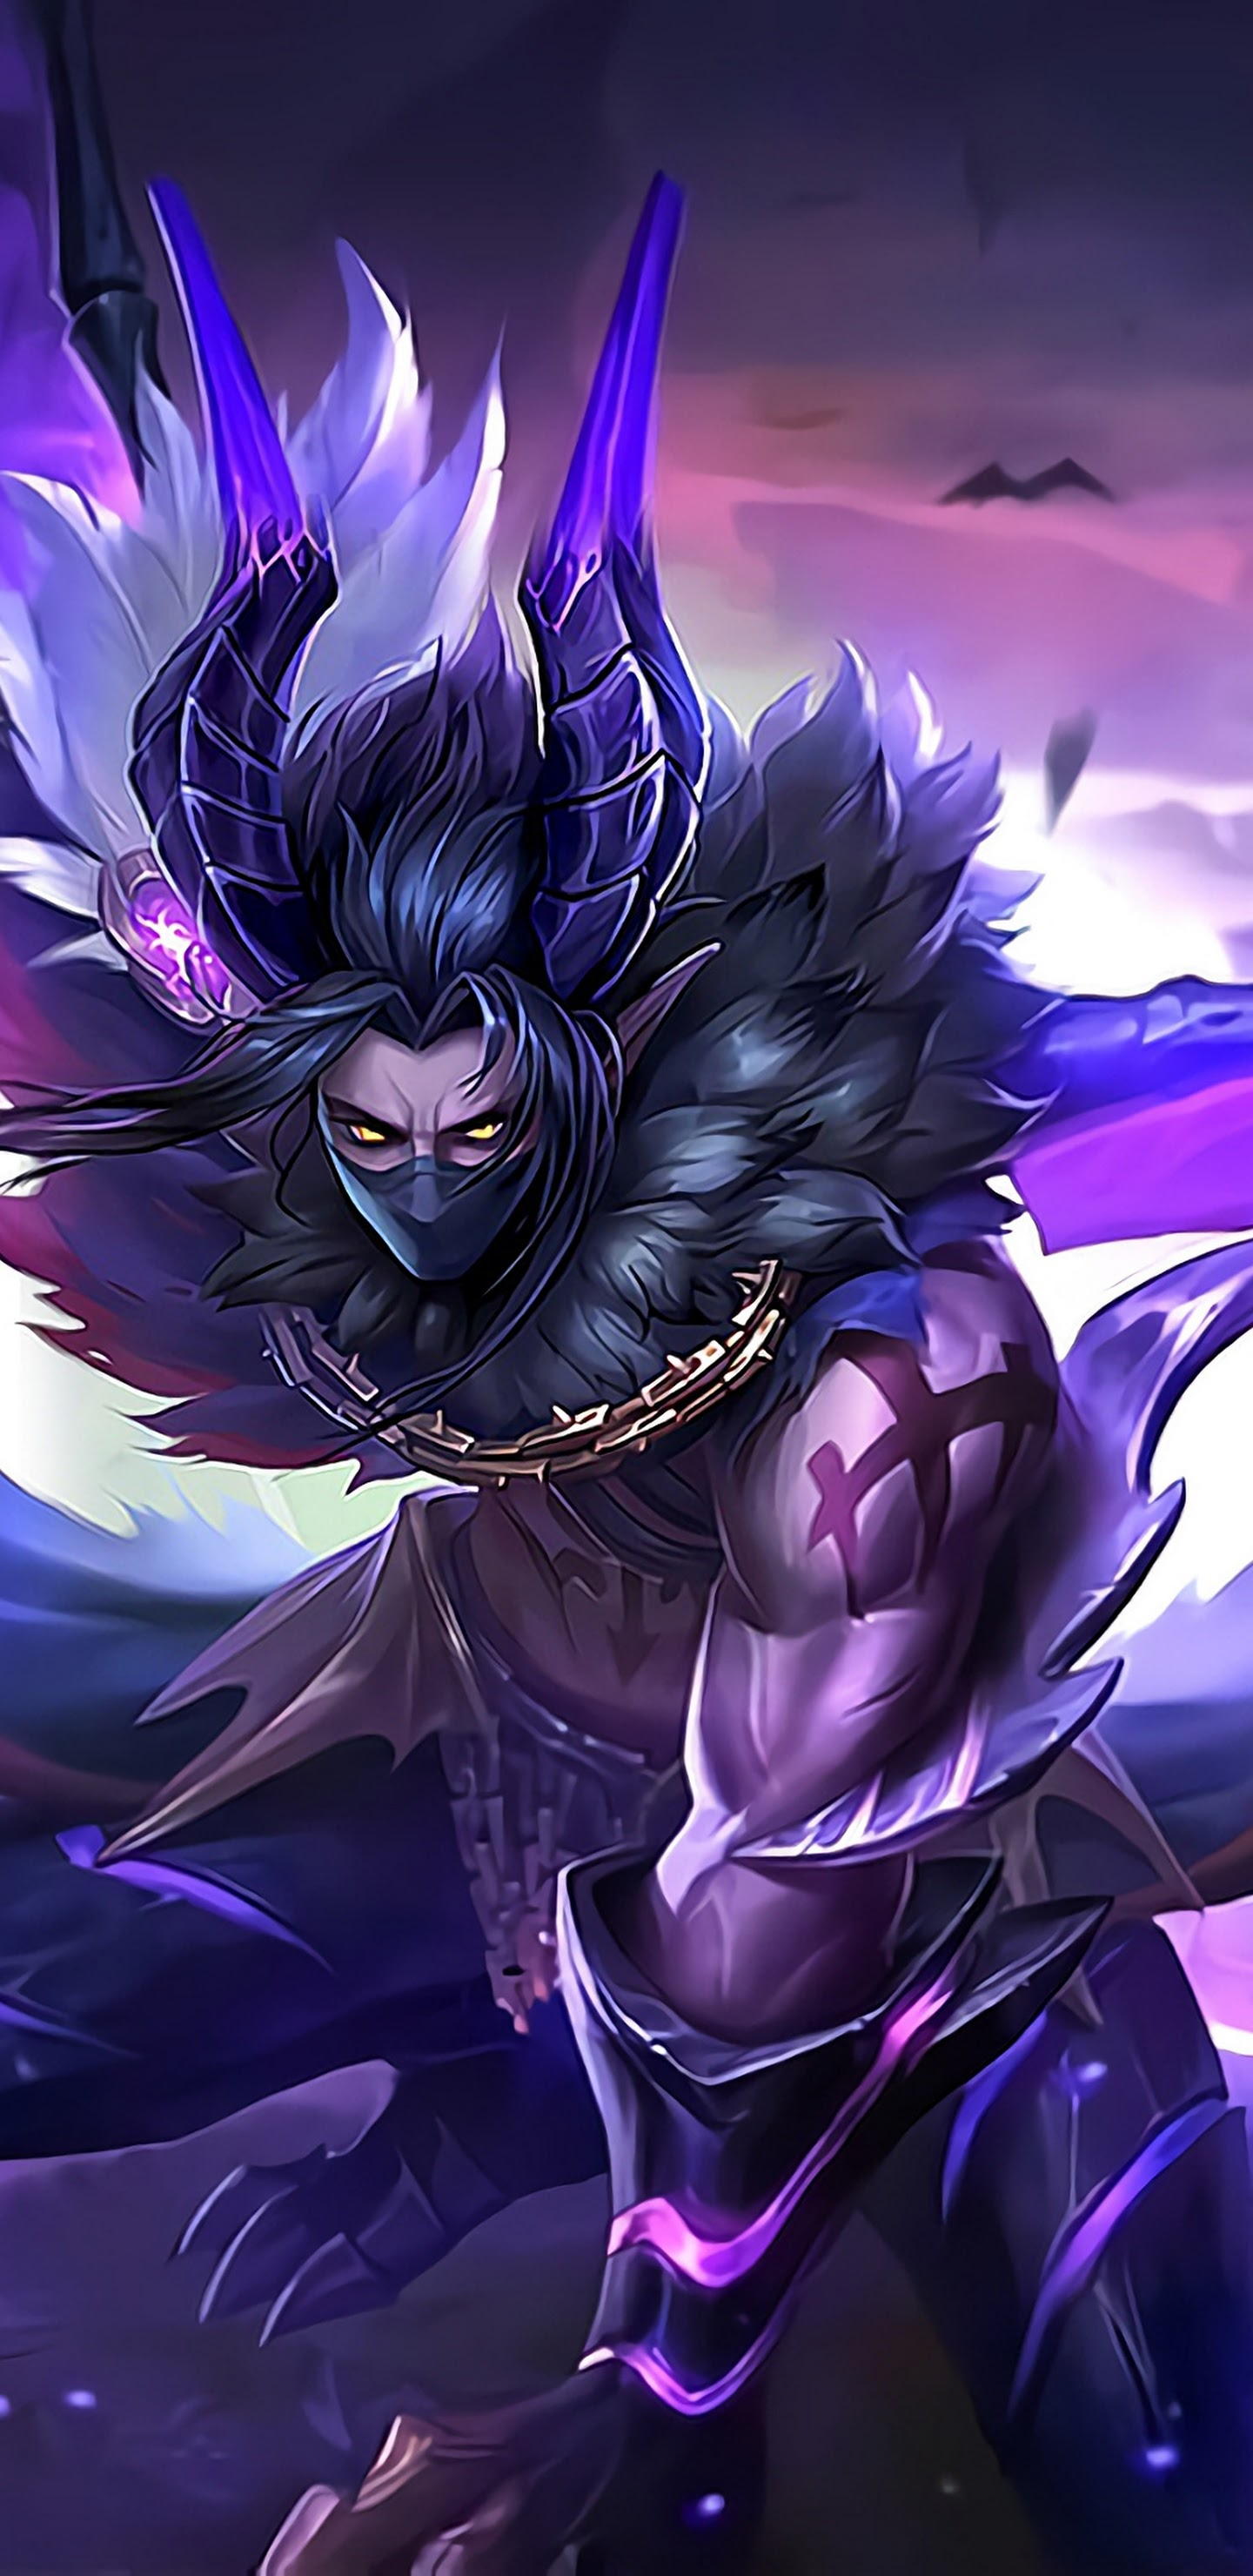 Moskov Twilight Dragon Skin Mobile Legends 4k Wallpaper 139